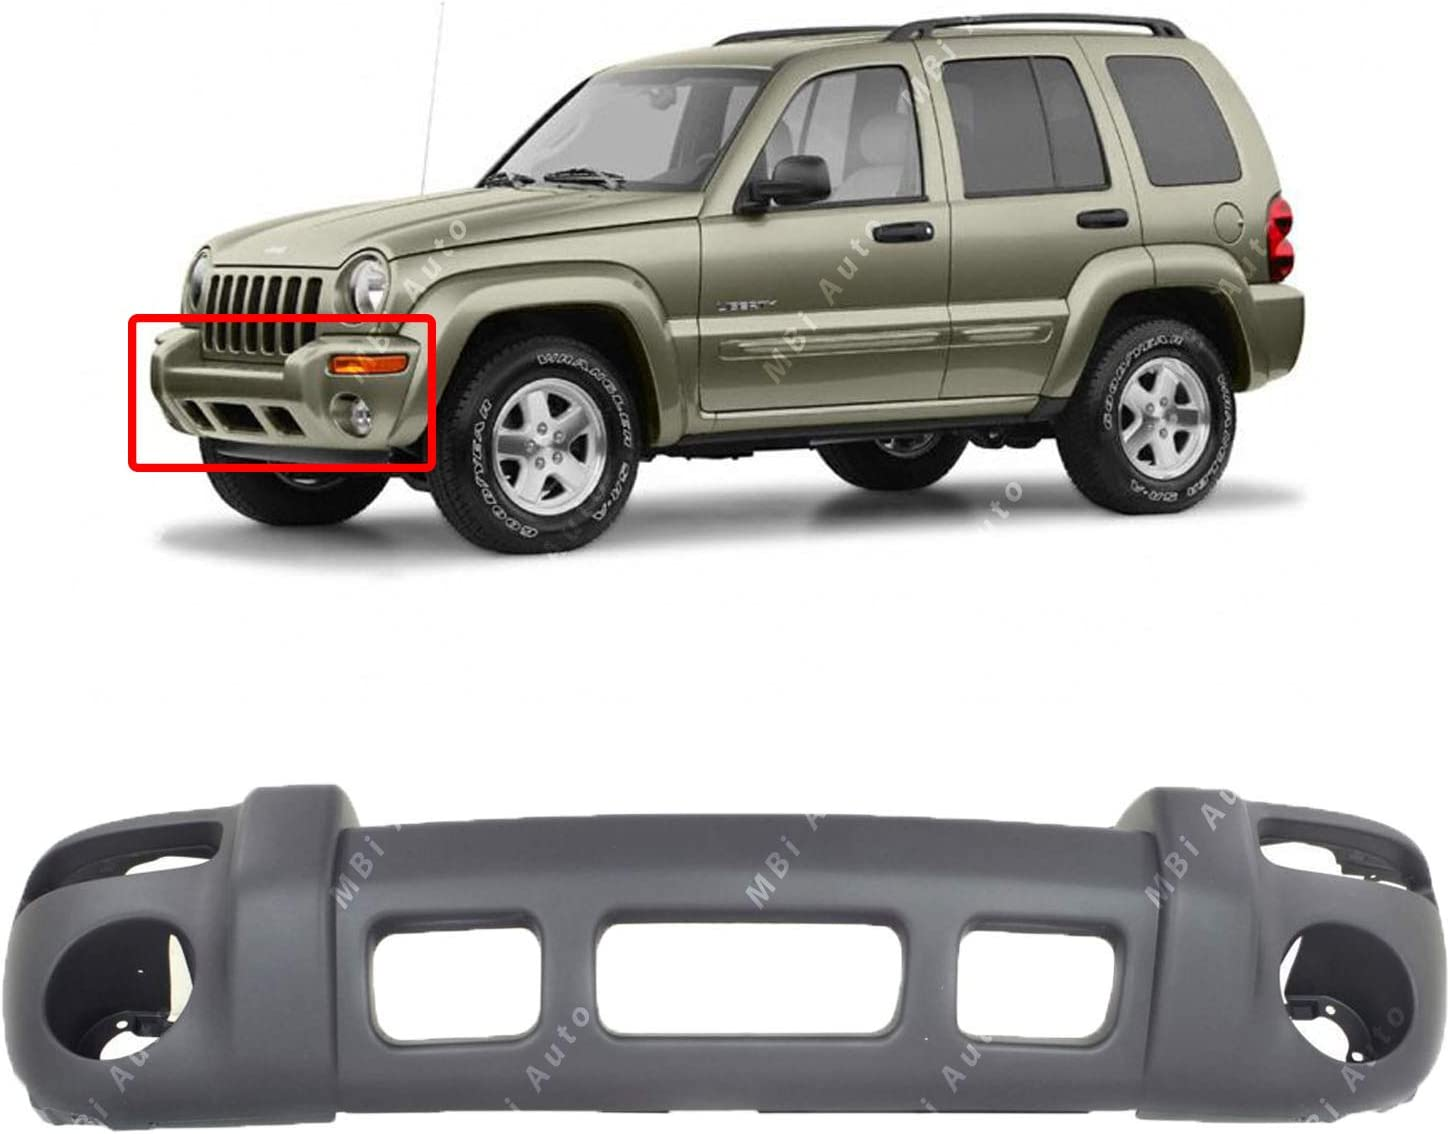 Amazon Com Bumpers That Deliver Textured Gray Front Bumper Cover Fascia For 2002 2003 2004 Jeep Liberty Sport 02 03 04 Ch1000367 Automotive